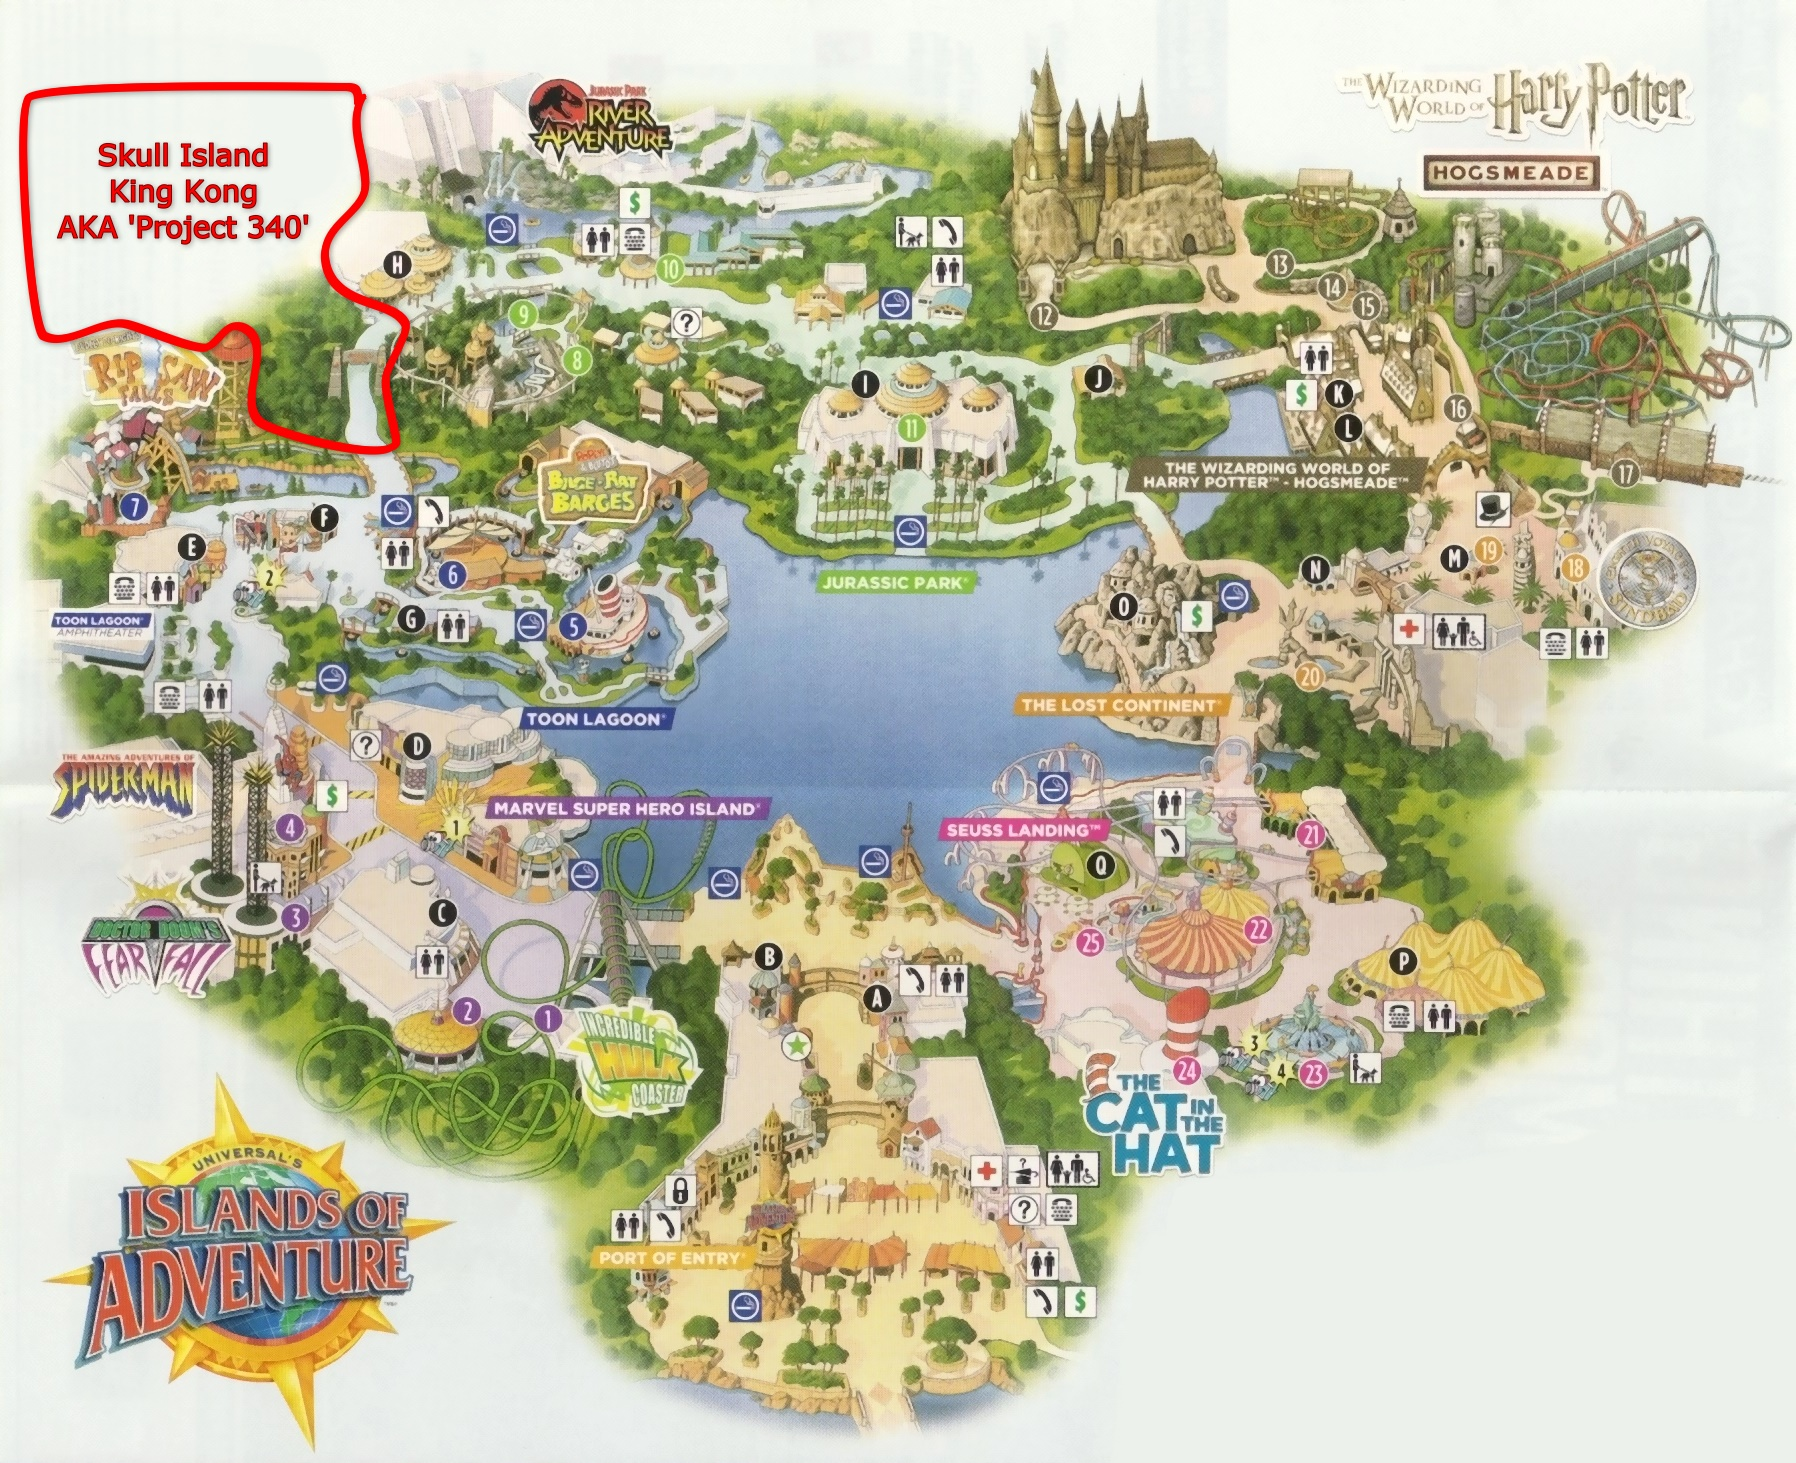 Universal Island Of Adventure Map With Harry Potter